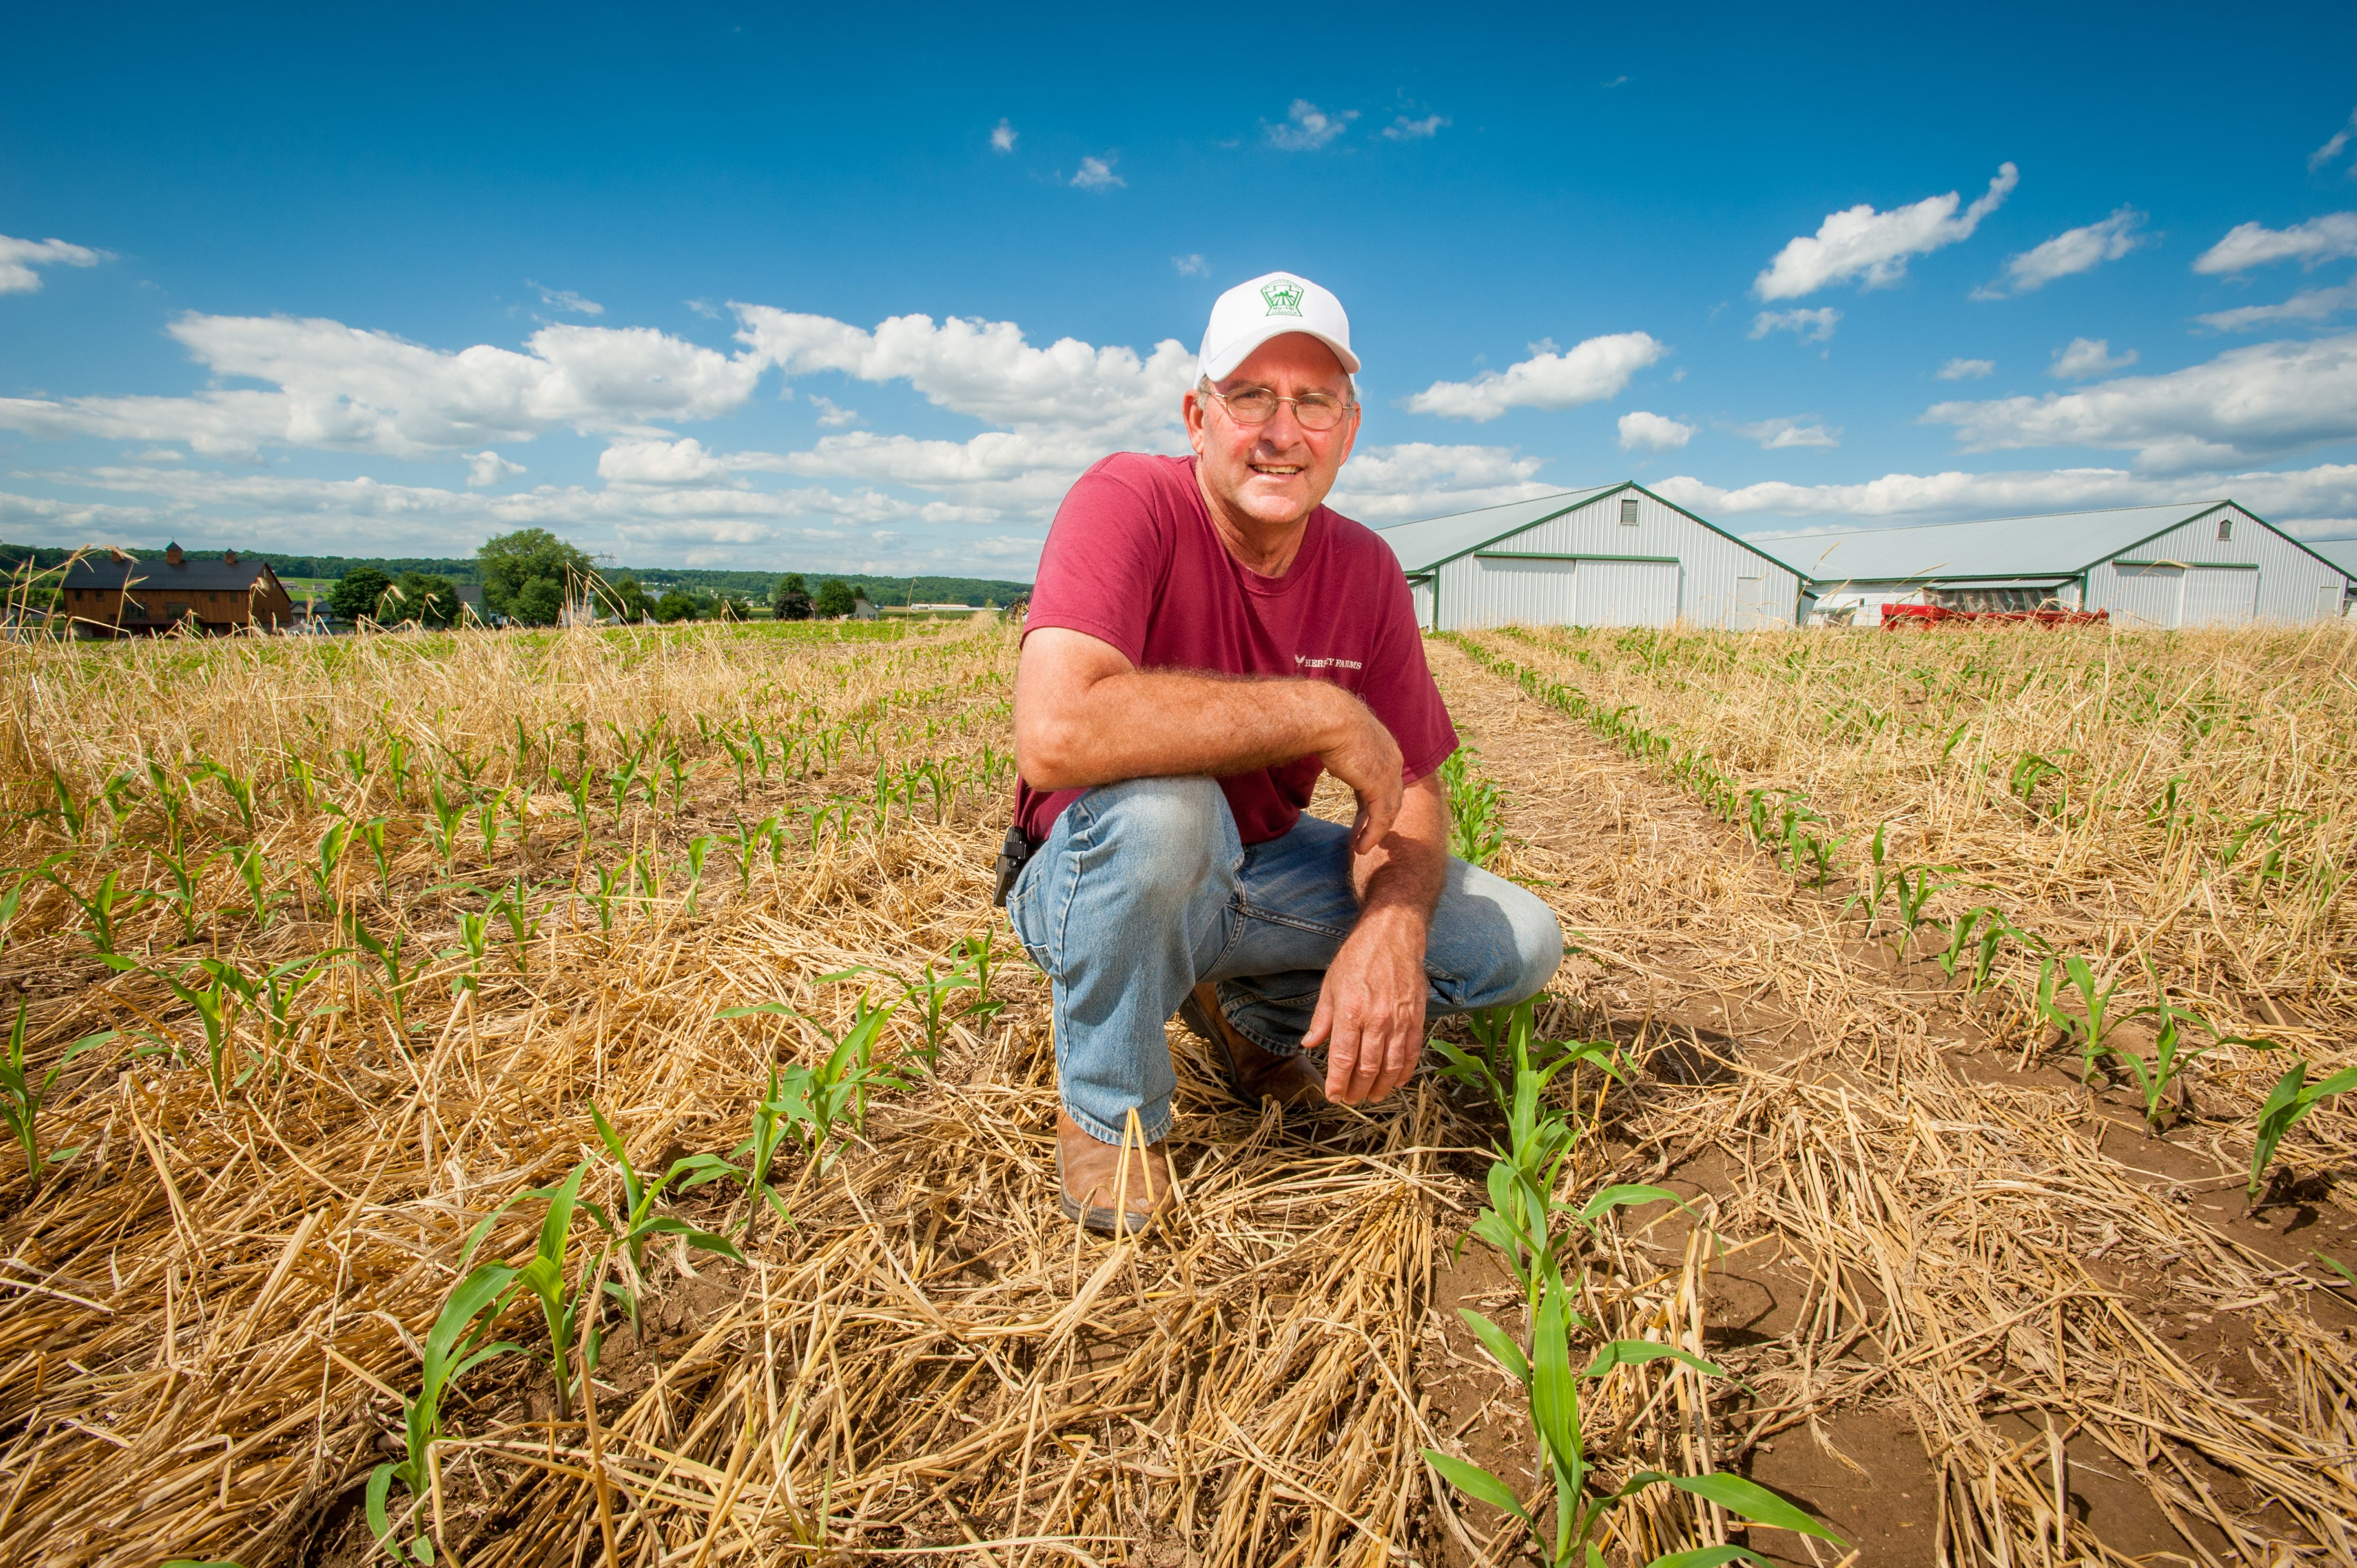 In Elizabethtown, PA Jim Hershey of Hershey Farms squats in a cornfield. The spring's corn crop can be seen emerging through the winter's cover crop residue